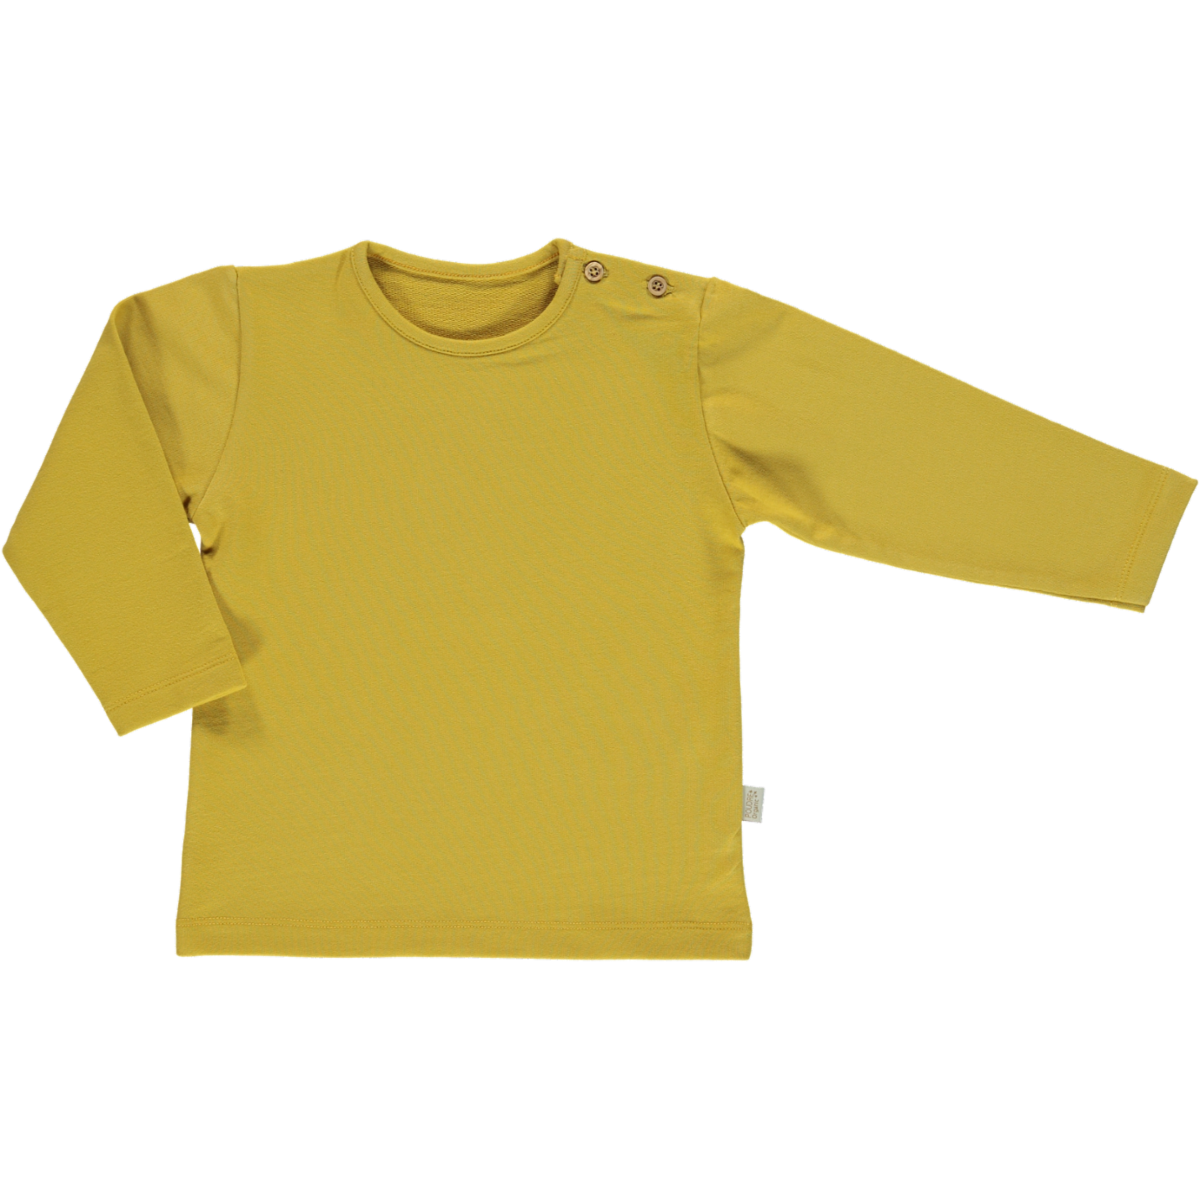 Poudre Organic Cotton Long Sleeve Top Estragon - Honey